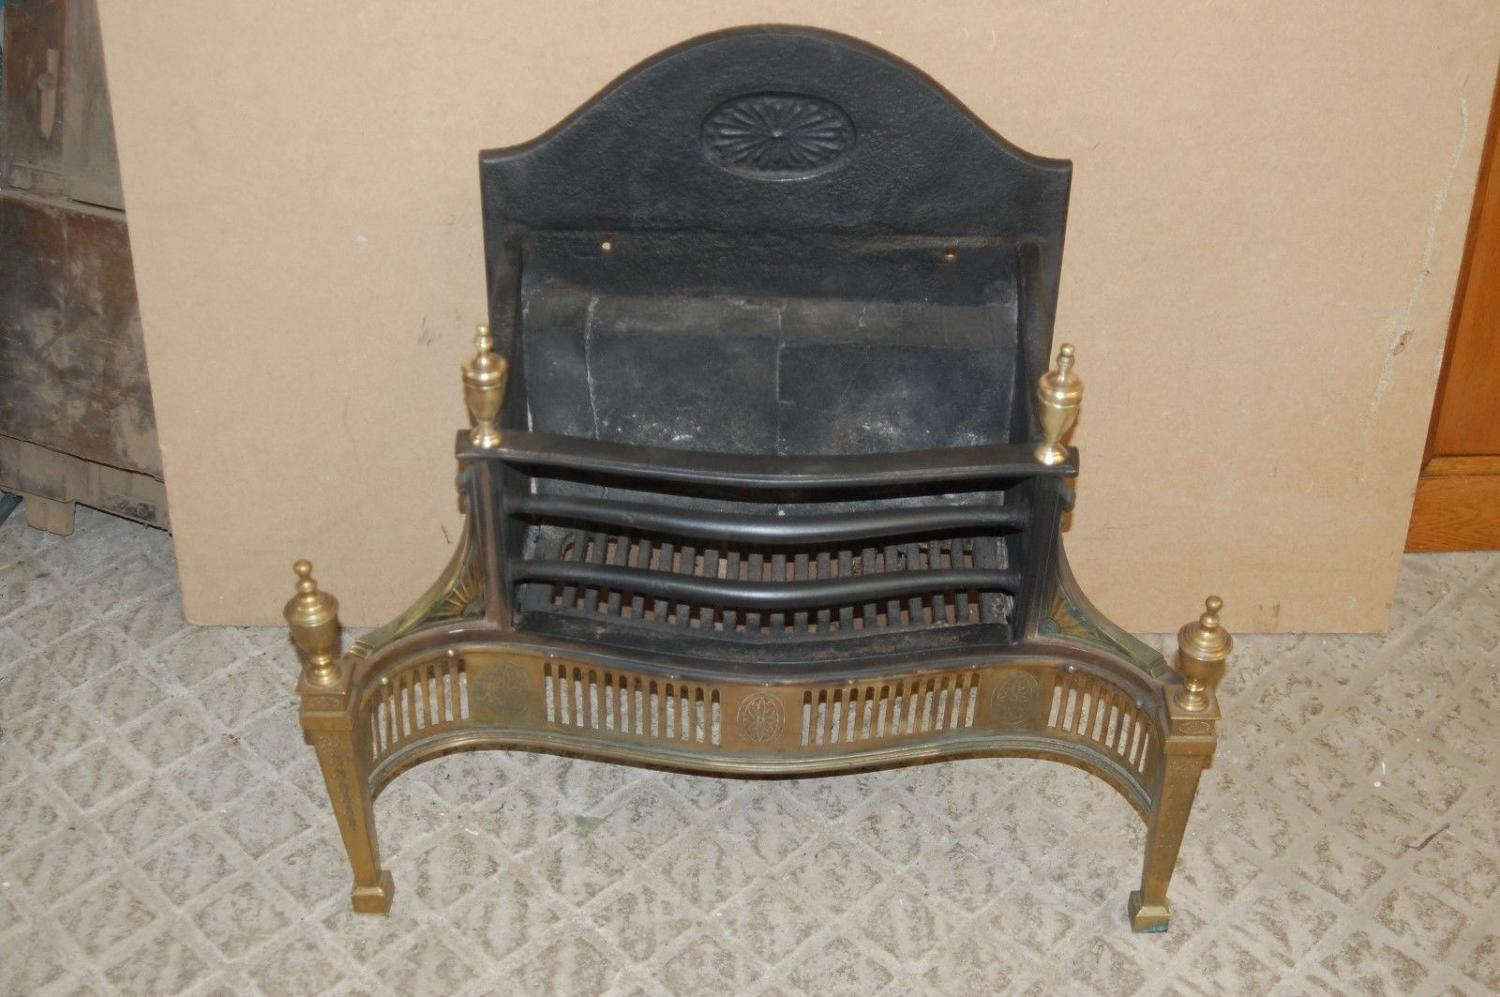 FB0022 AN EDWARDIAN ANTIQUE CAST IRON AND BRASS FIRE REGISTER